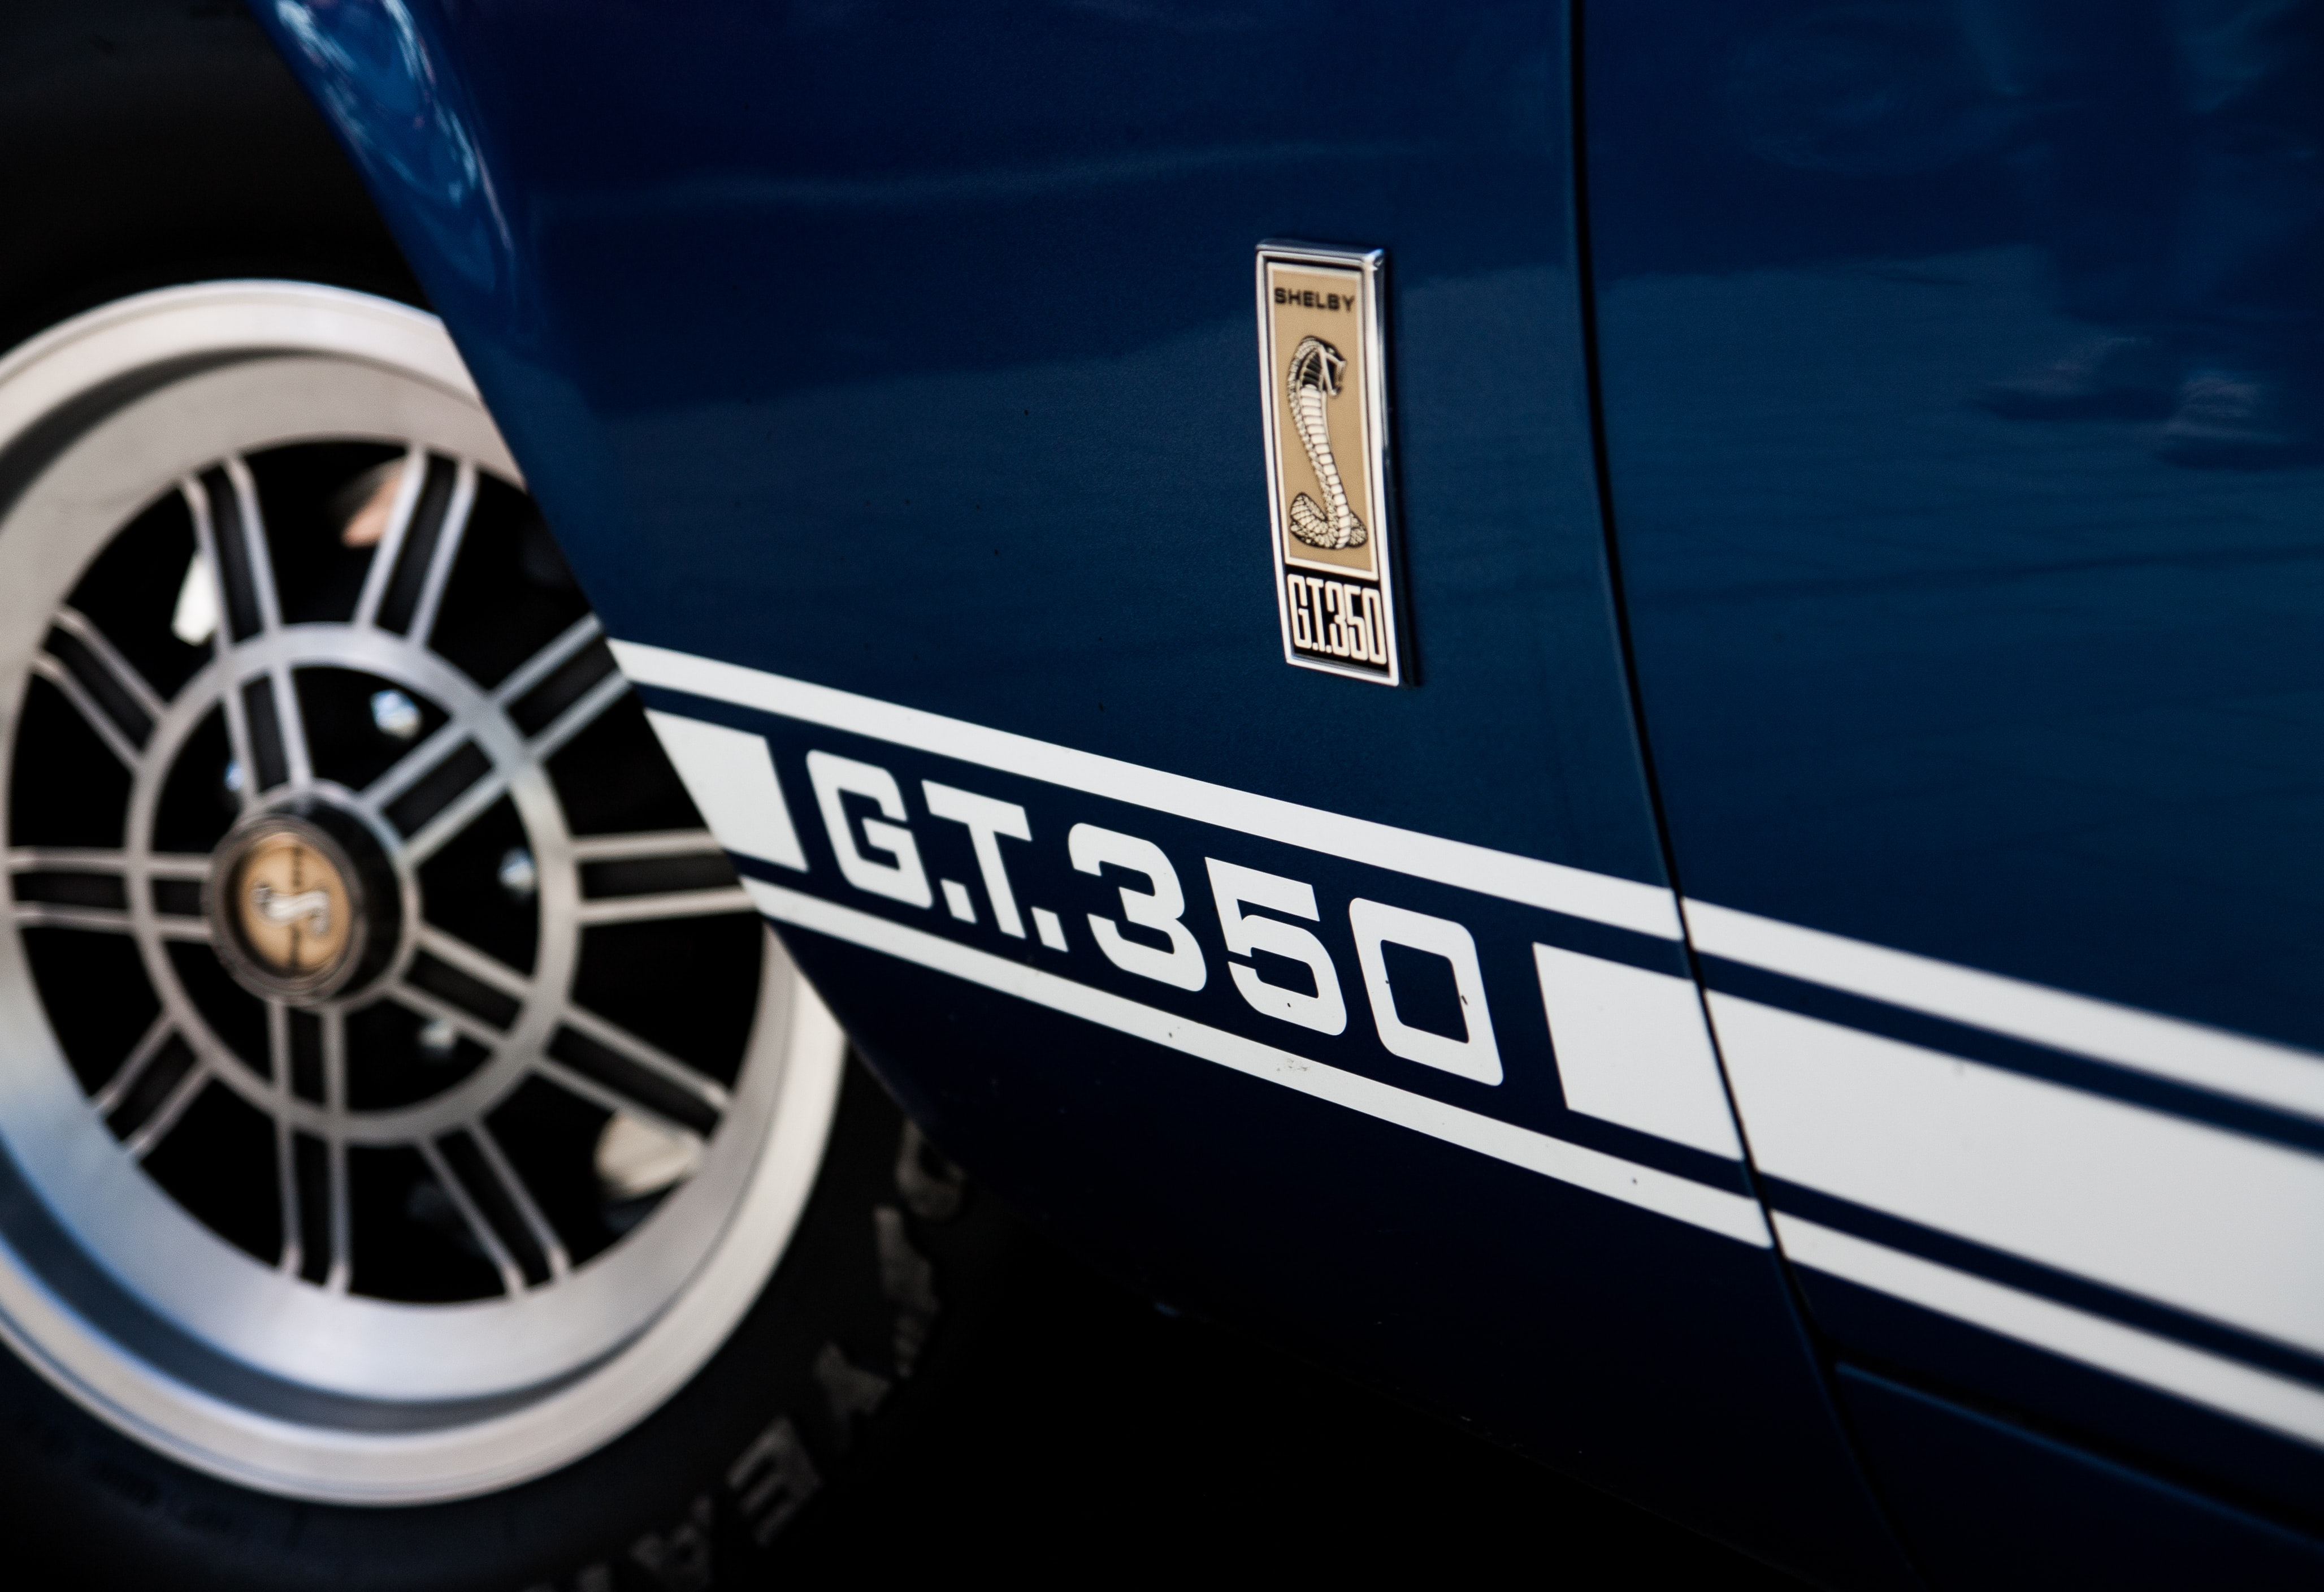 Details on a GT 350 Mustang sports car